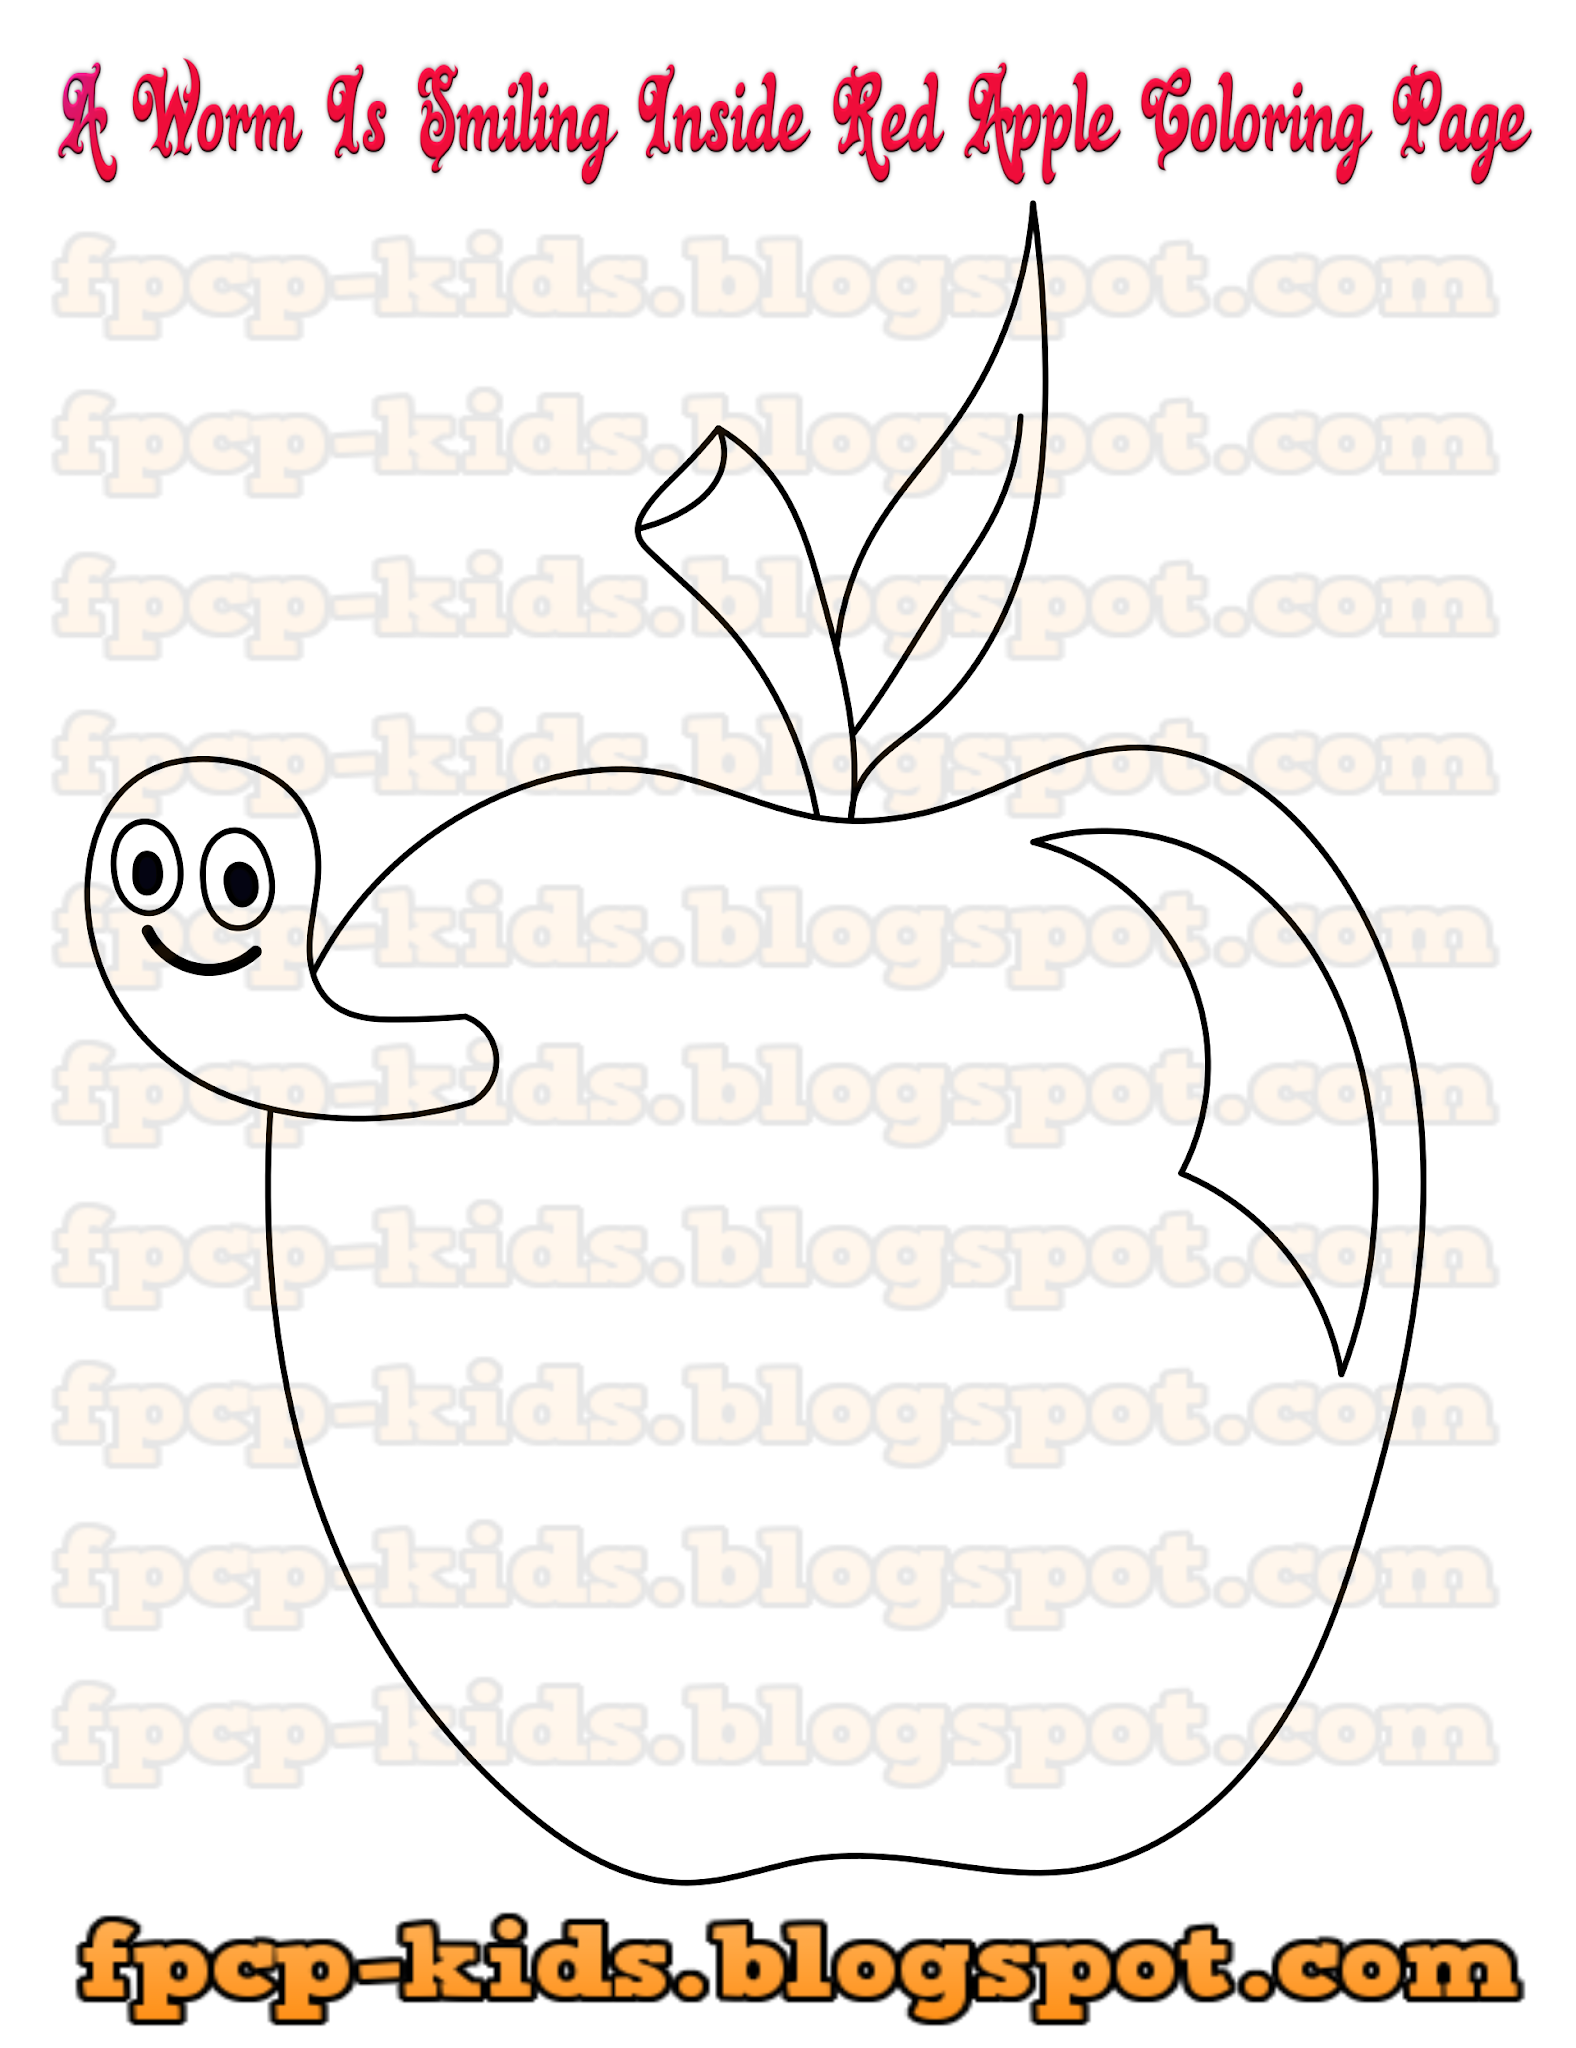 A Worm Is Smiling Inside Red Apple Coloring Page